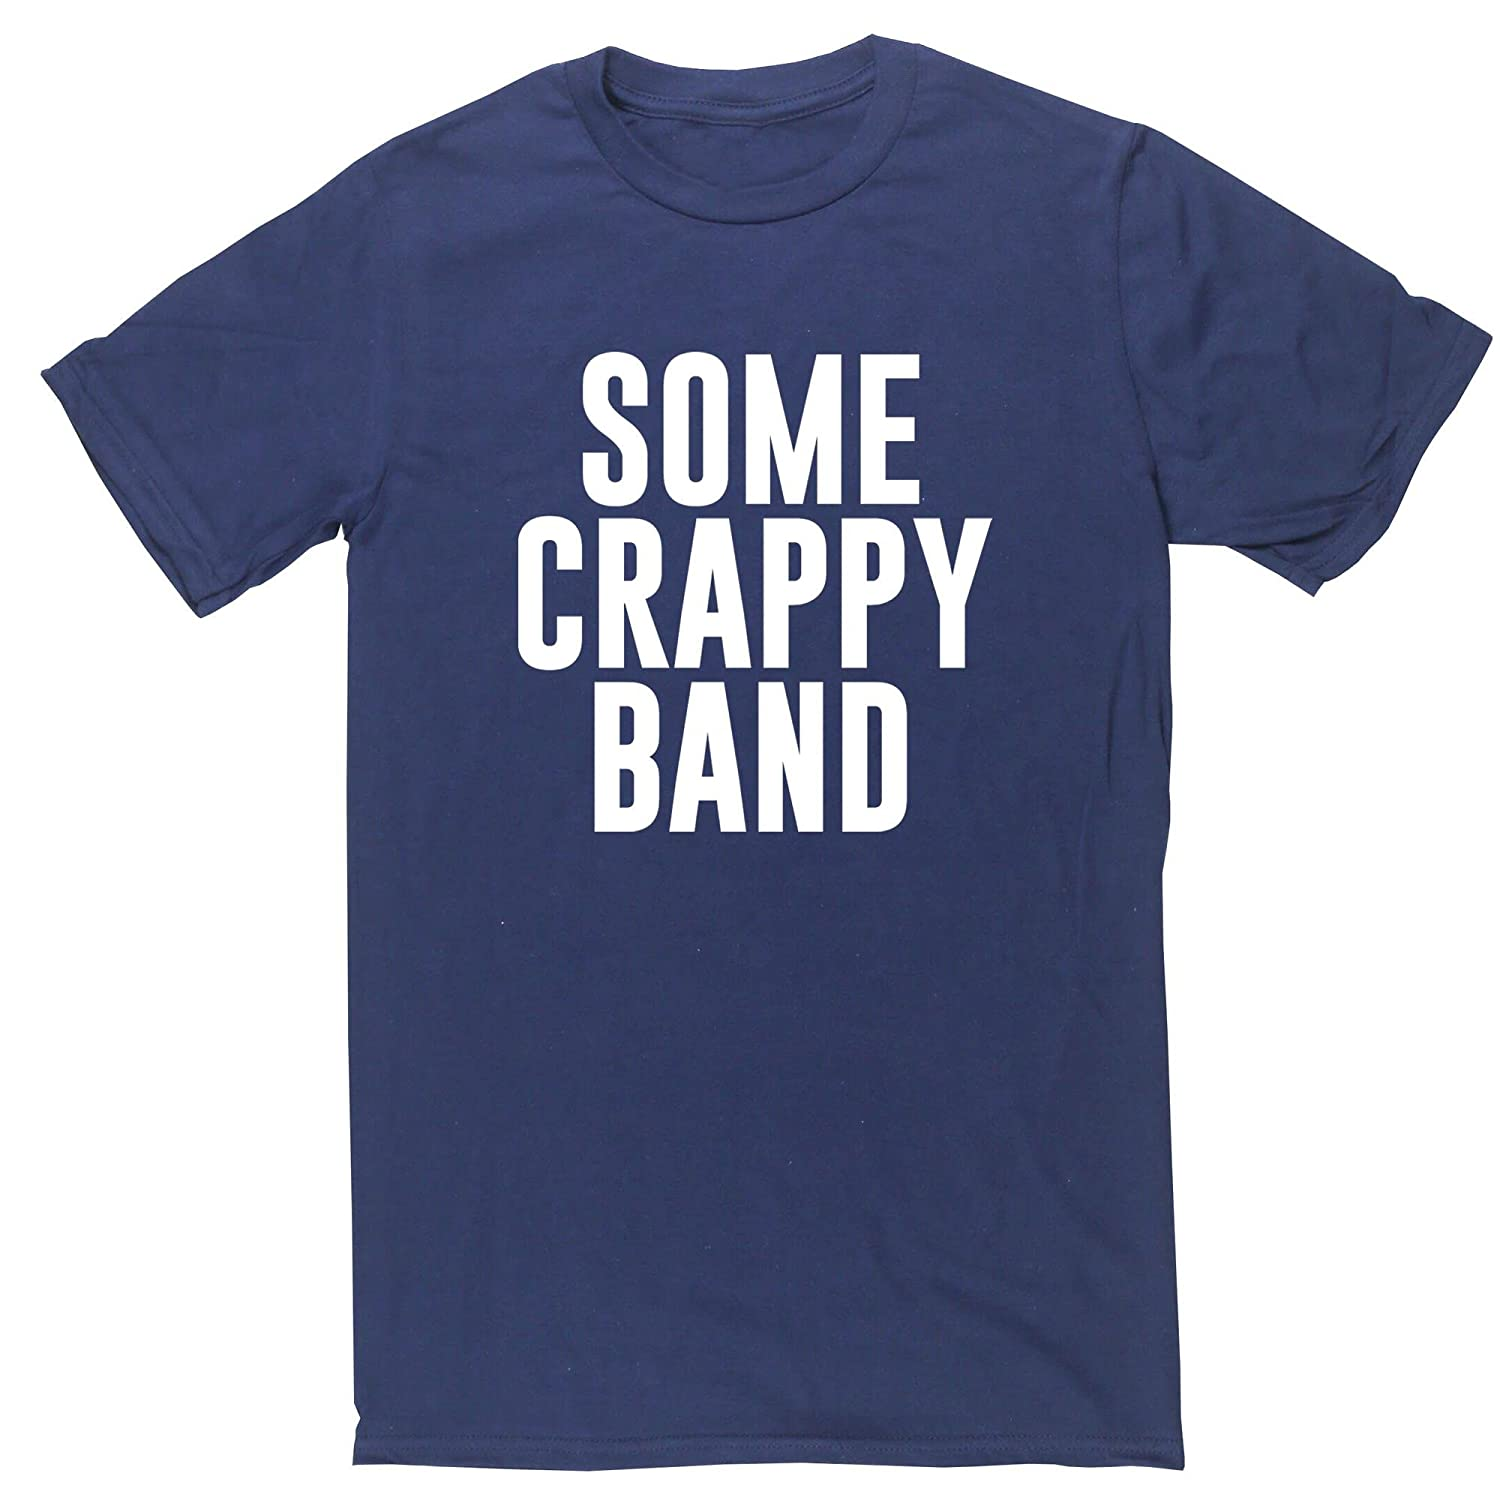 3ffe93e945884 Hippowarehouse Some Crappy Band Unisex Short Sleeve t-Shirt (Specific Size  Guide in Description)  Amazon.co.uk  Clothing